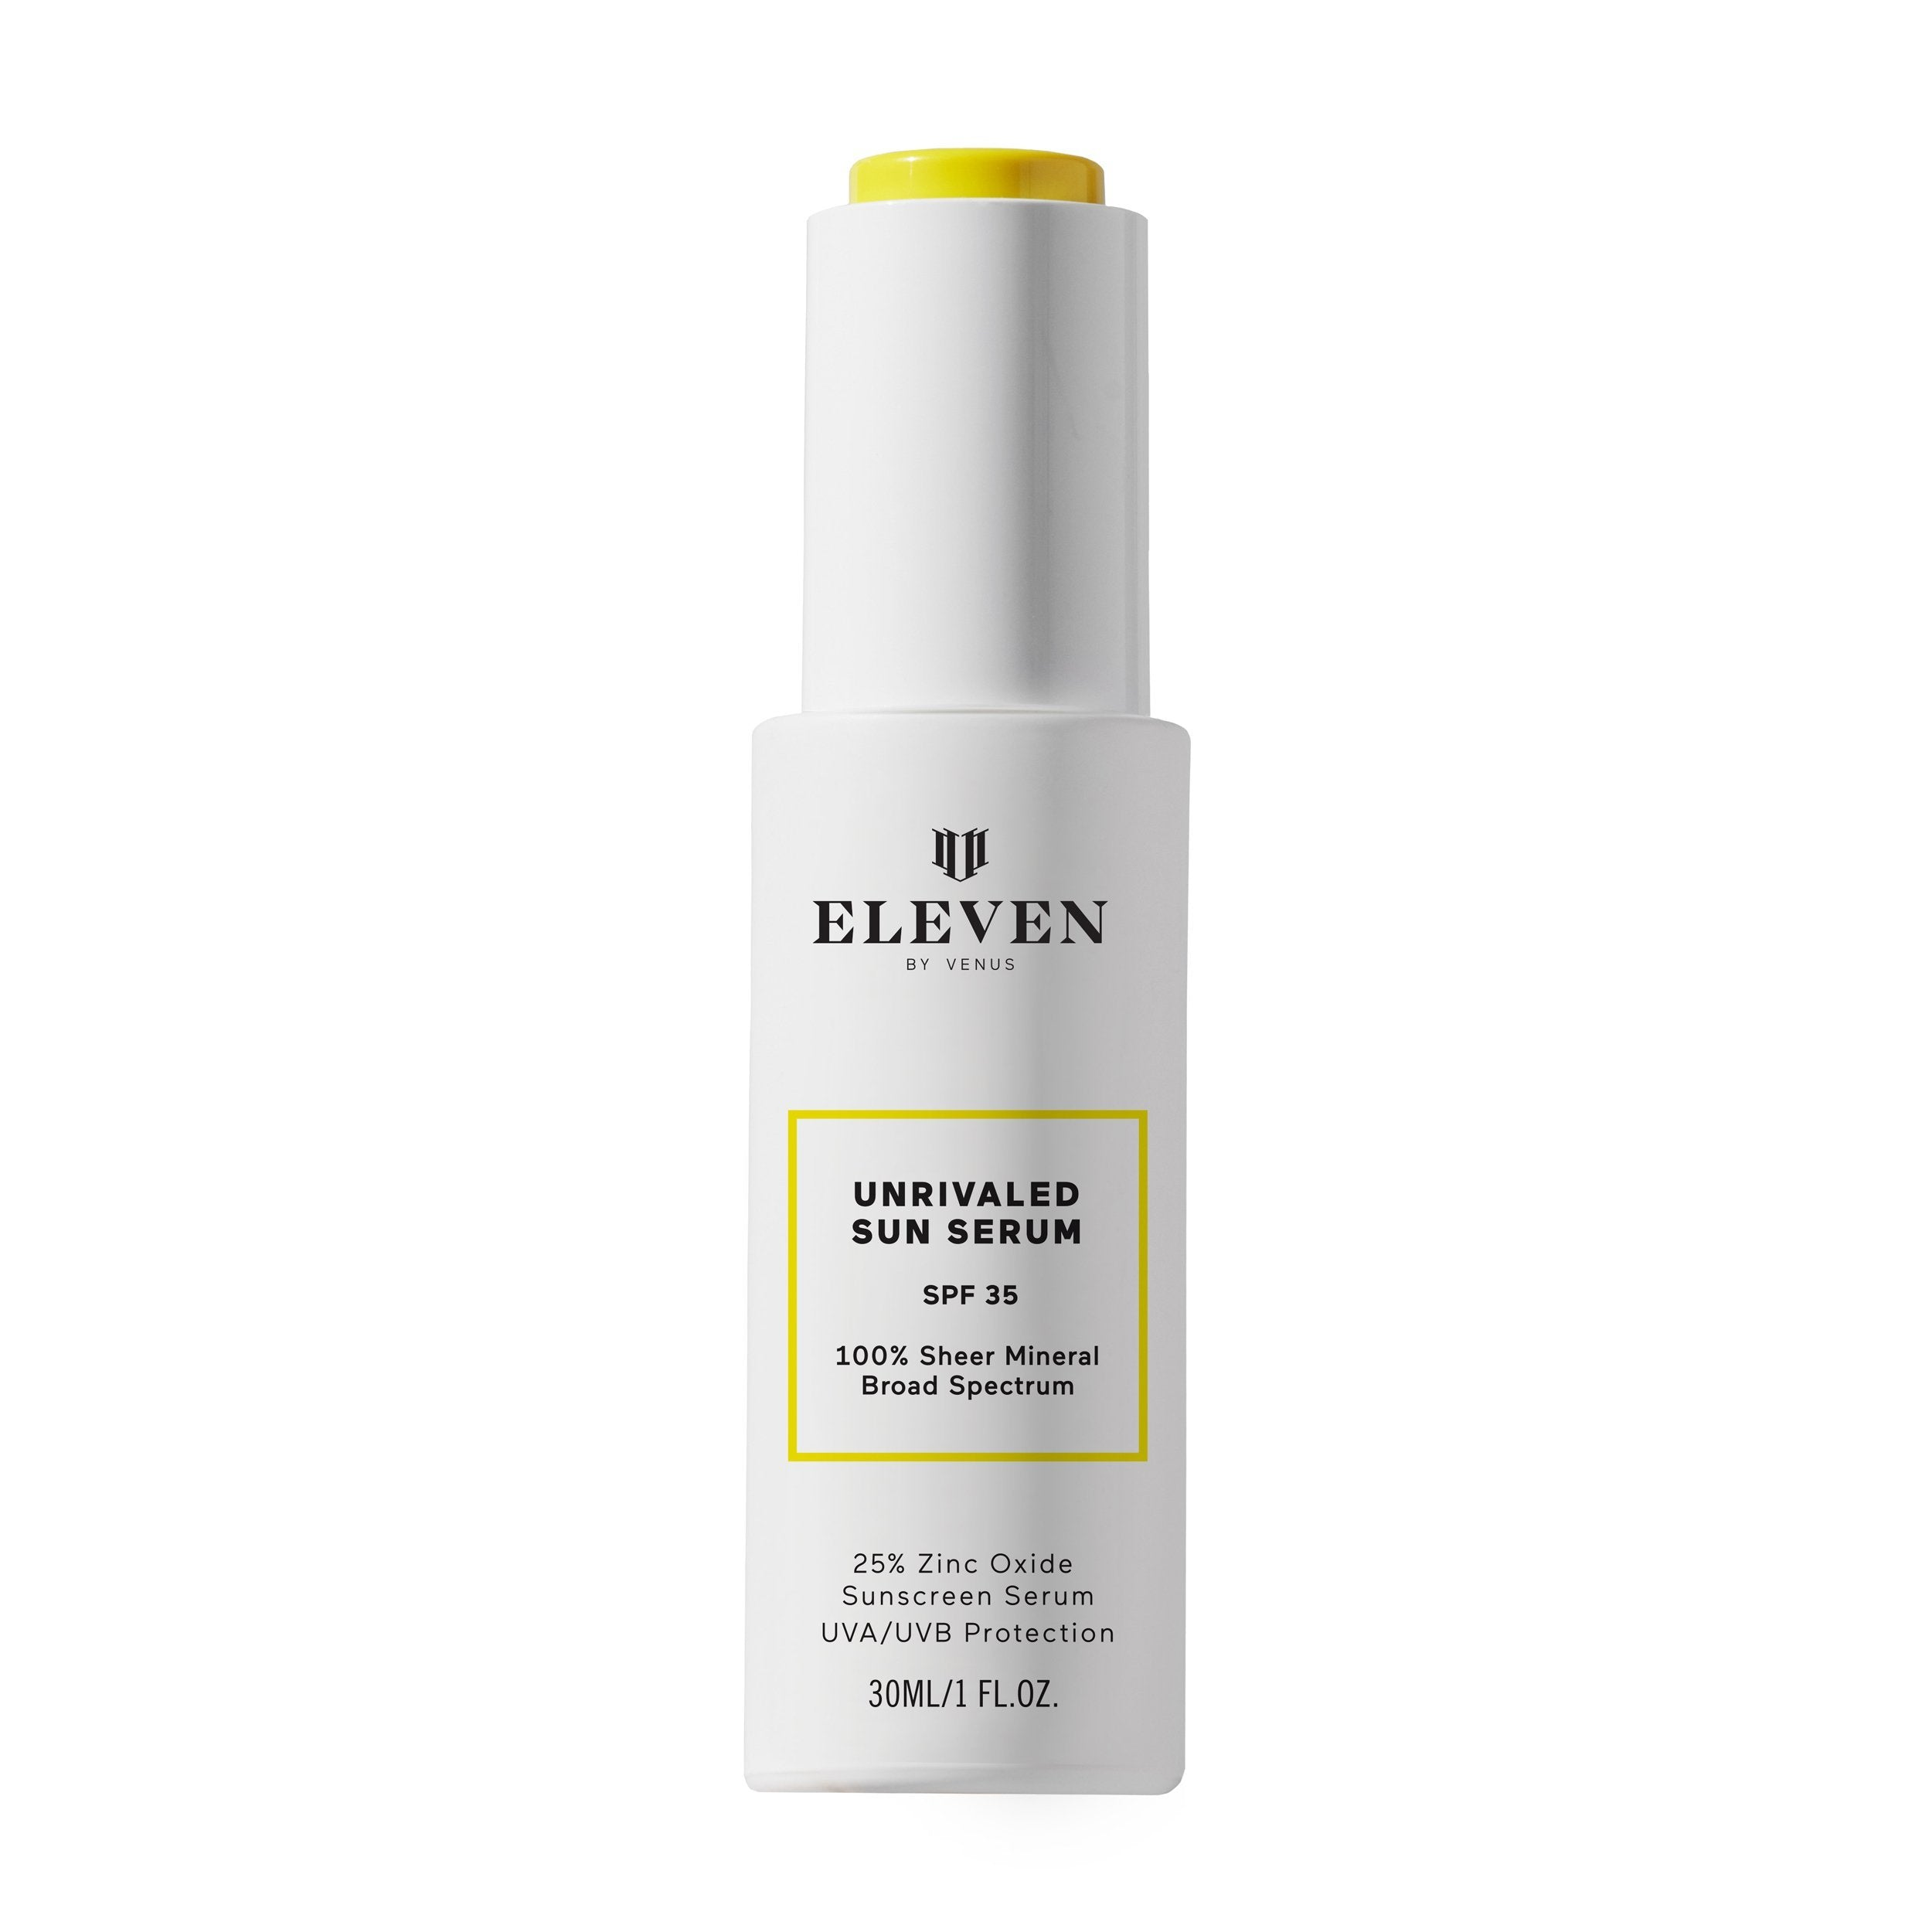 Unrivaled Sun Serum SPF 35